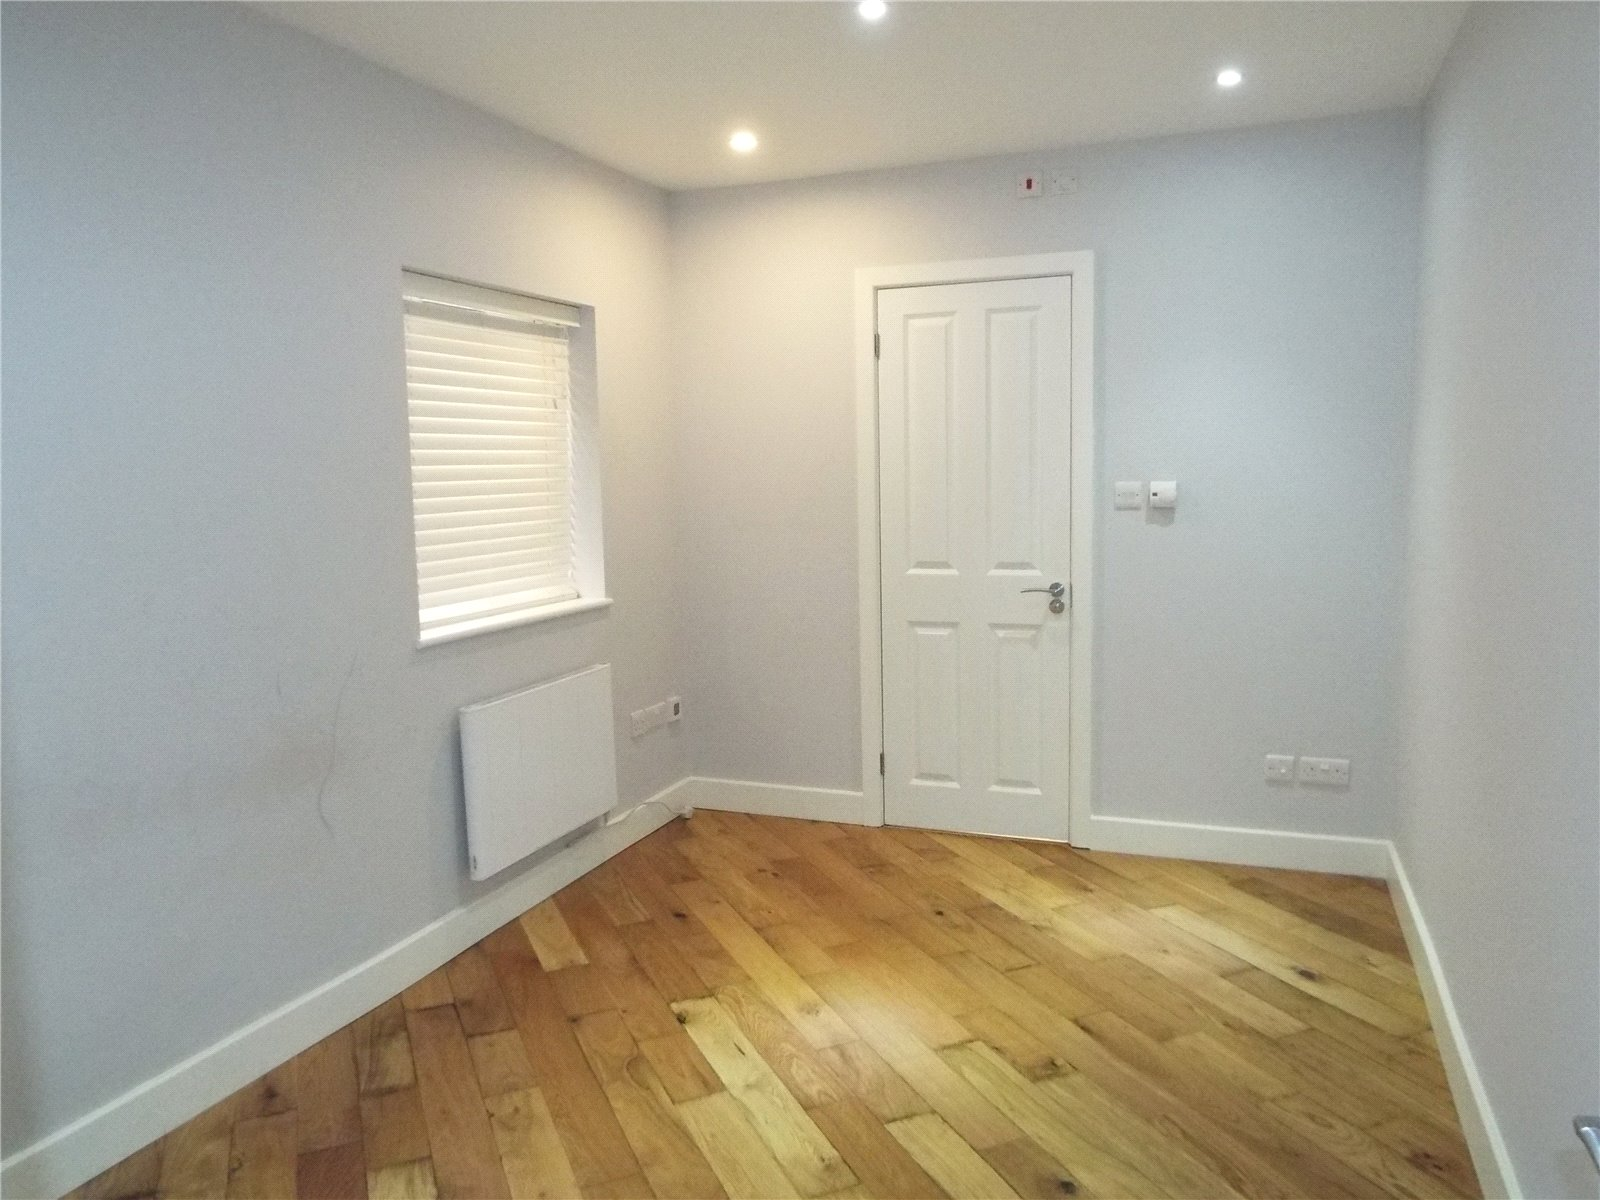 1 bed house to rent in Potters Bar, EN6 1EY  - Property Image 3